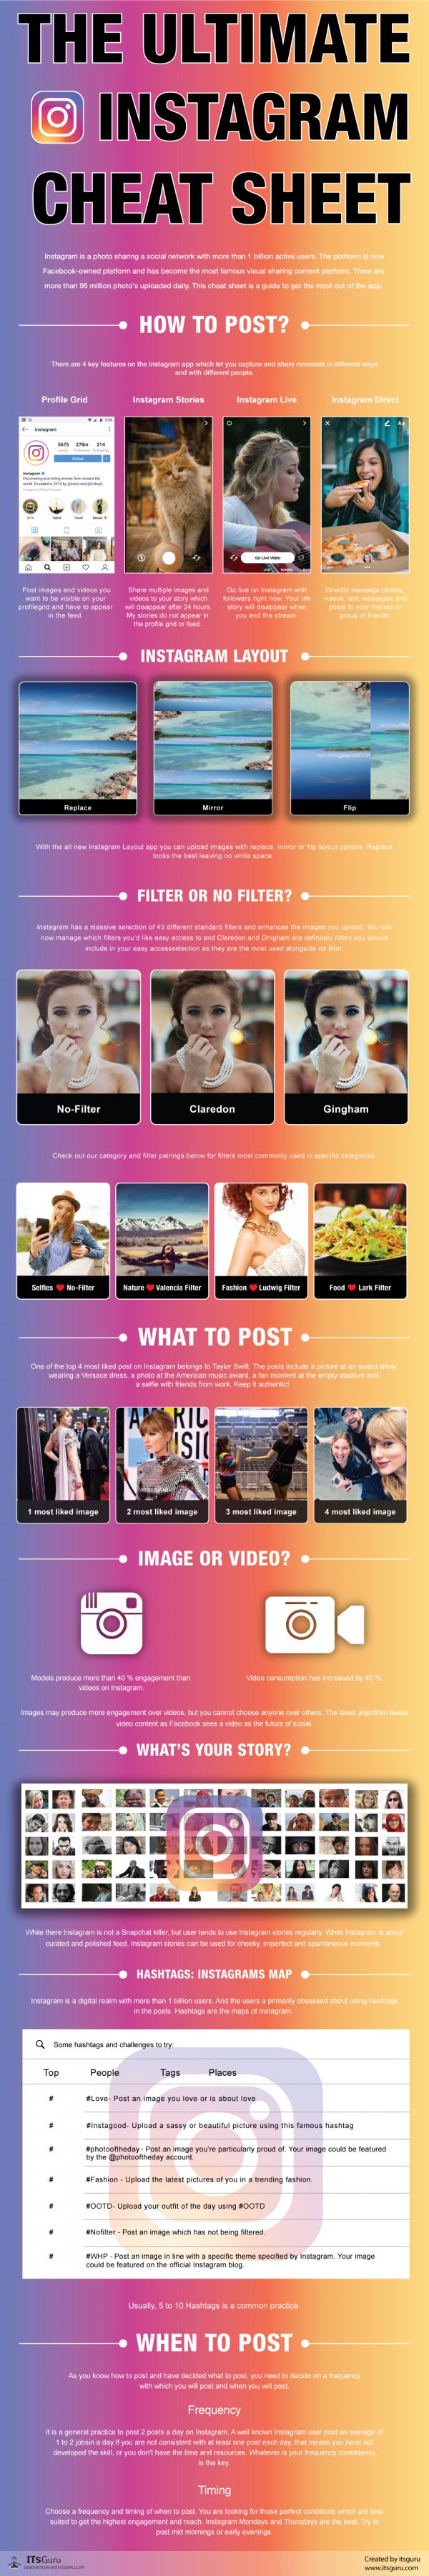 Instagram Cheat Sheet Guide For You